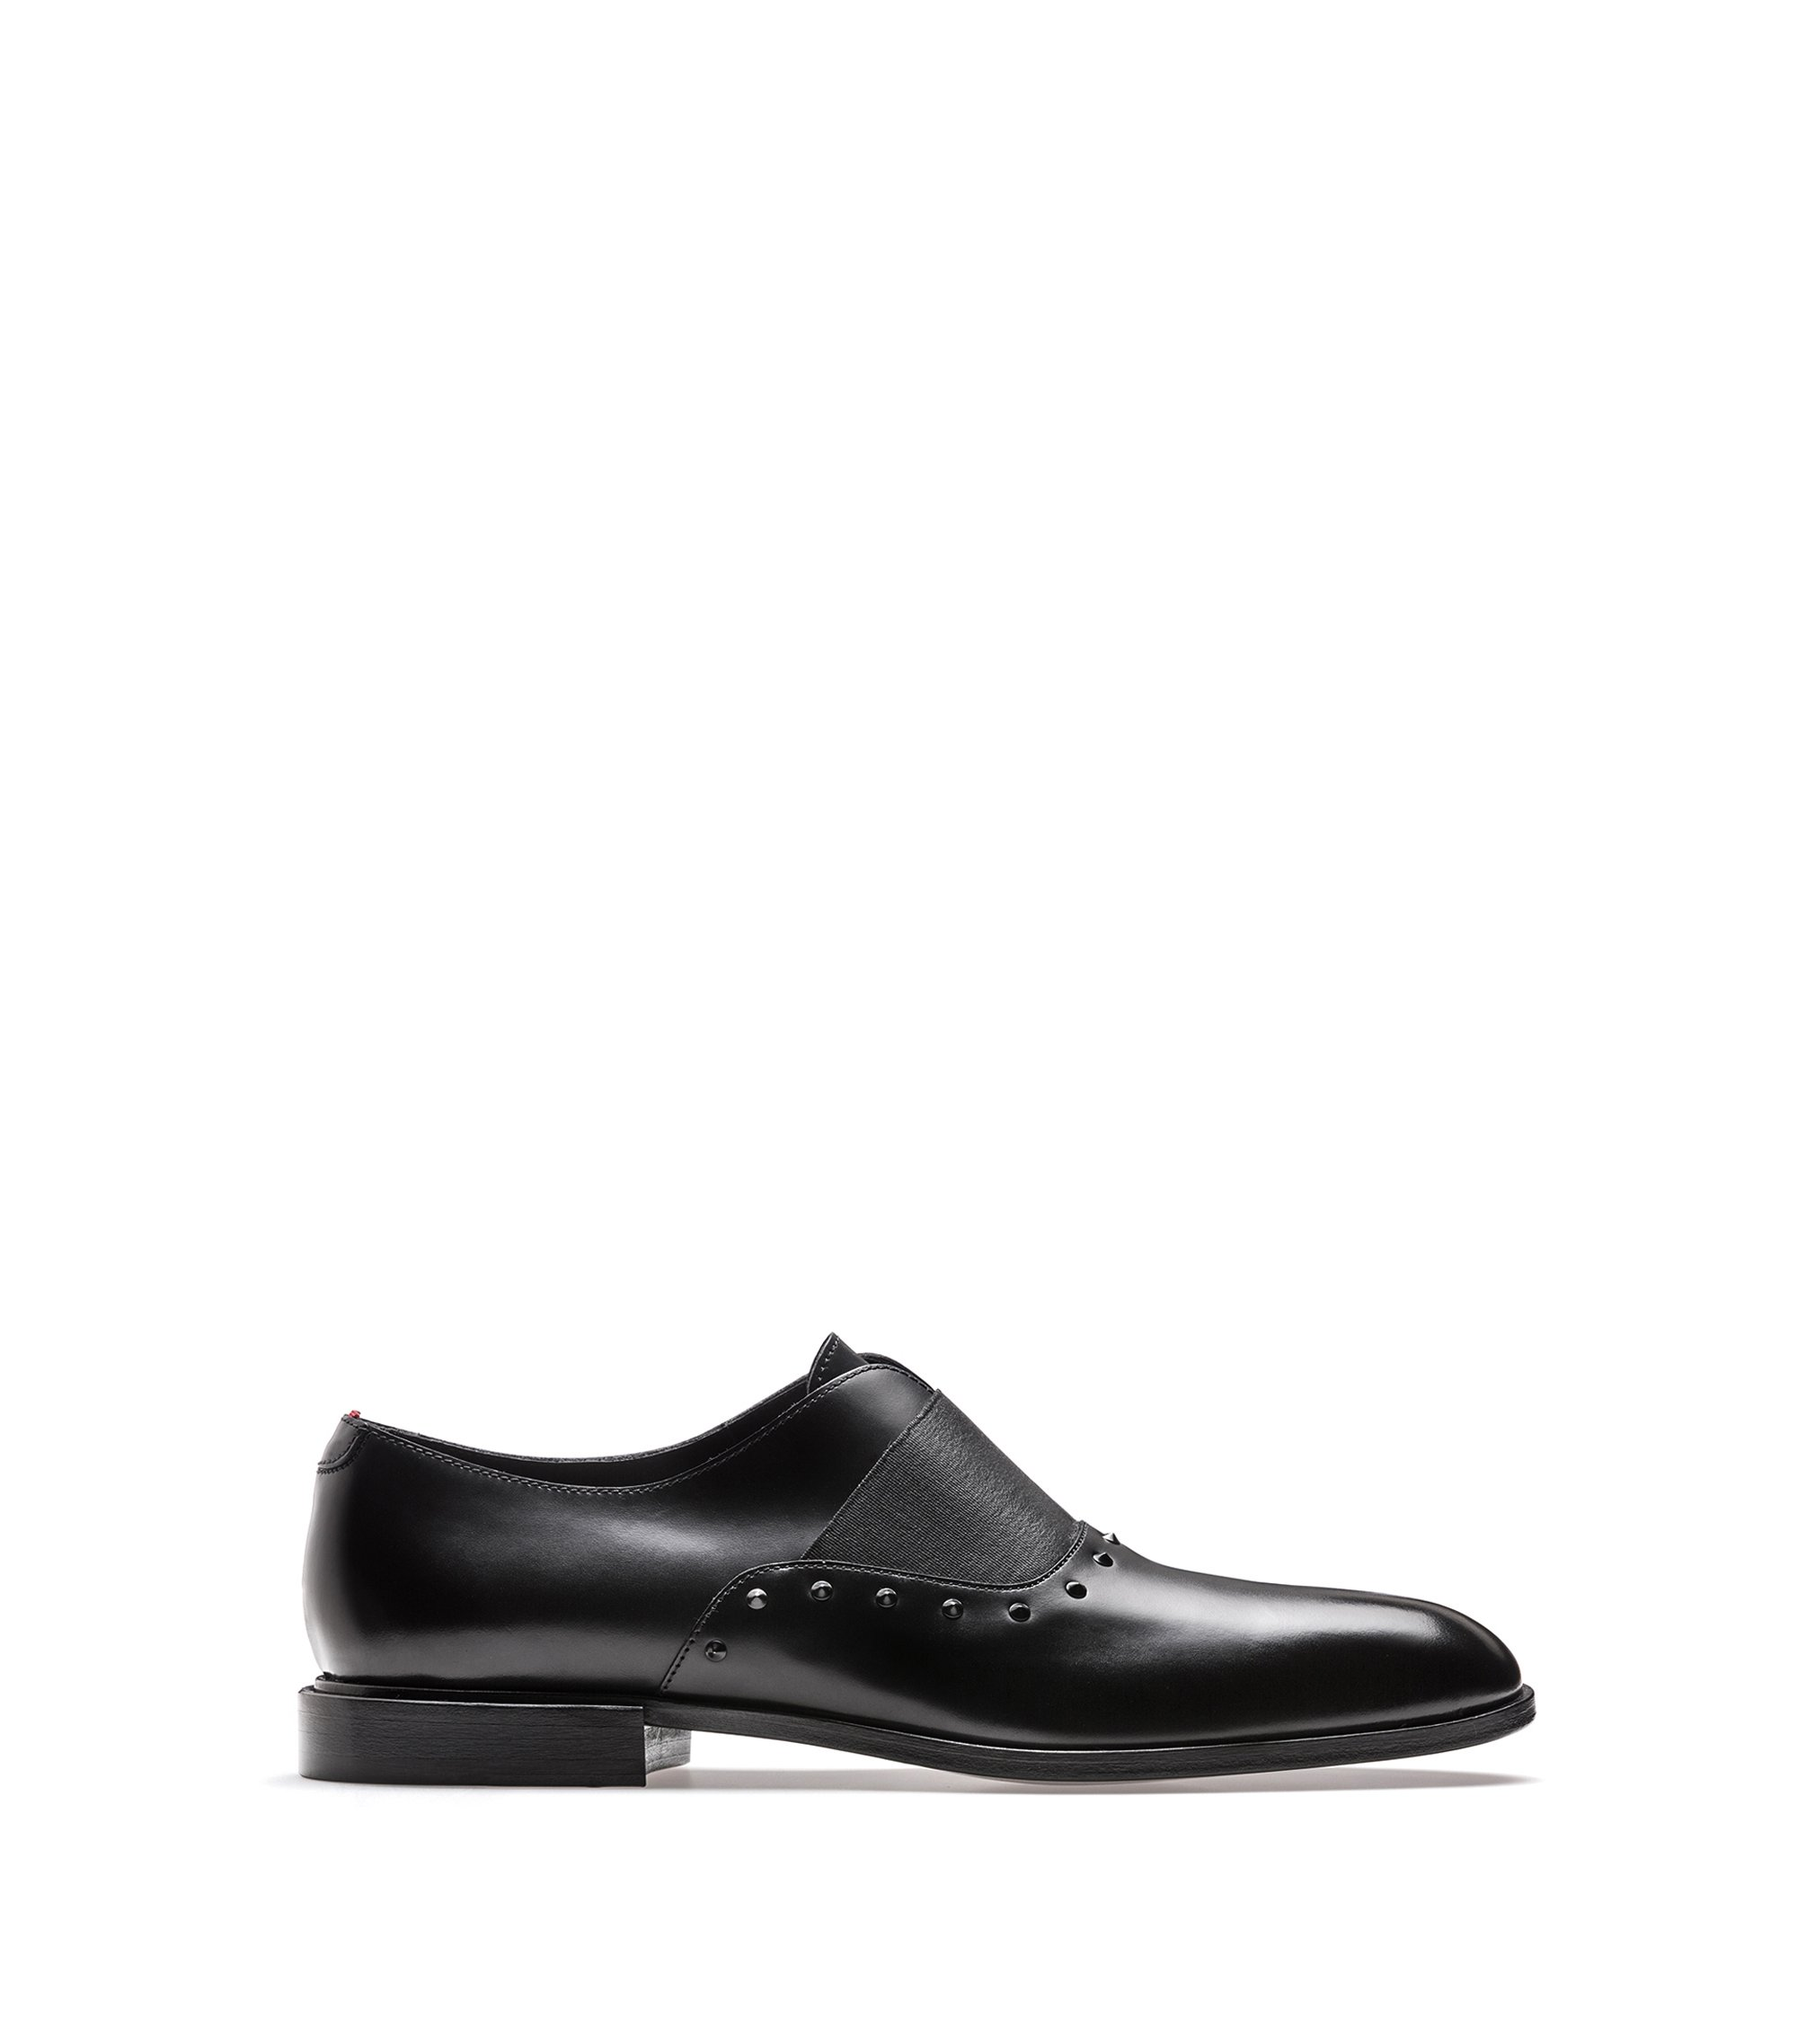 Slip-on leather dress shoes with stud detailing, Black